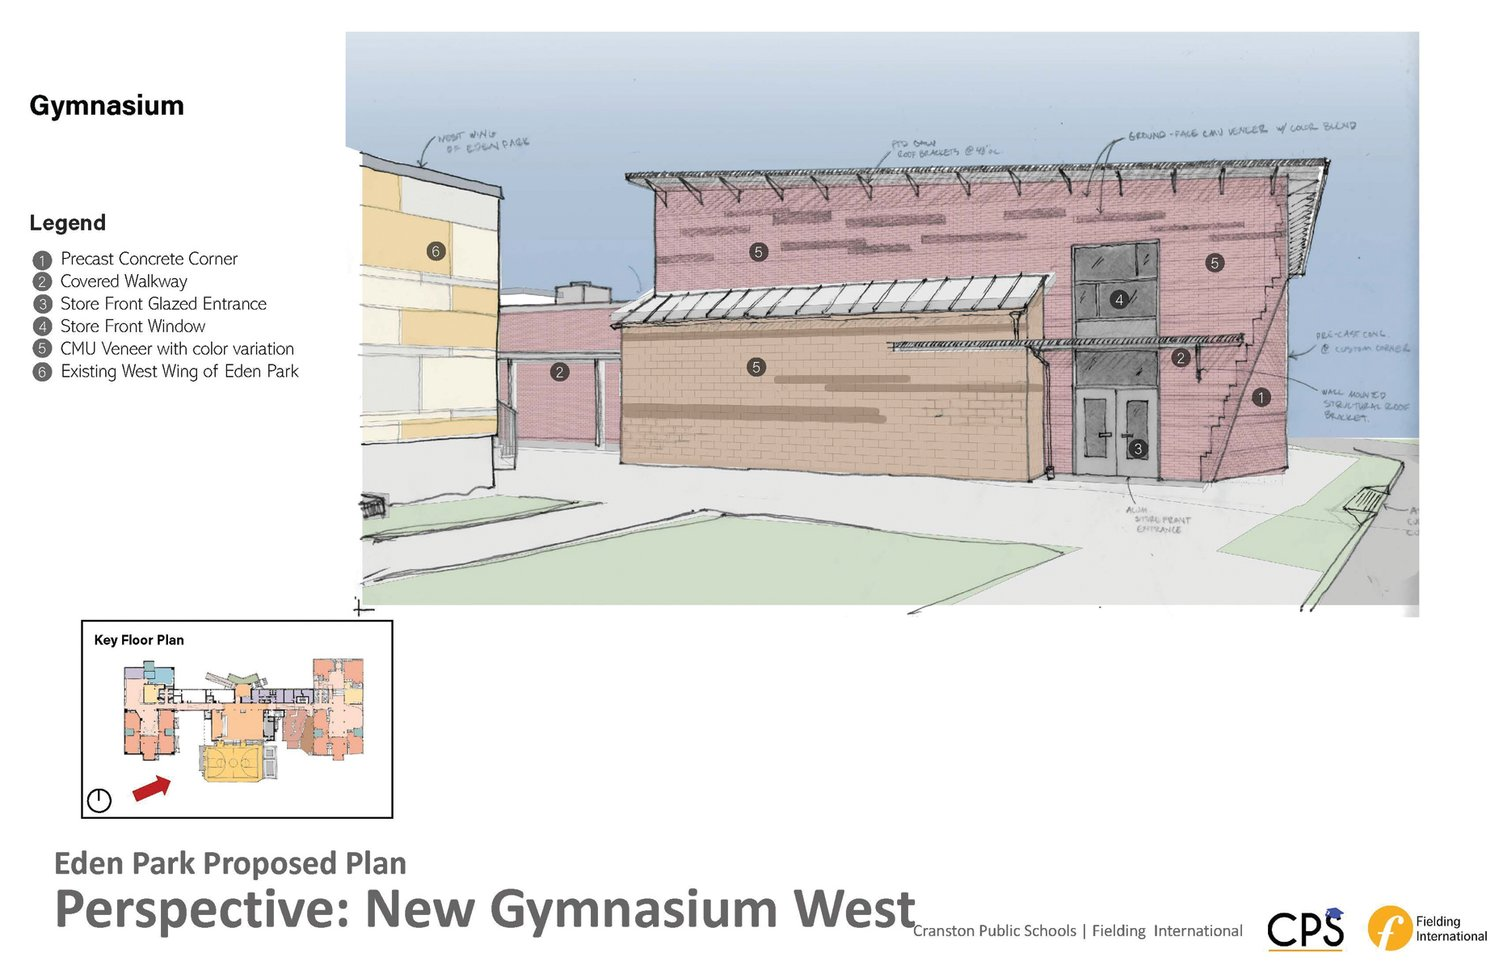 DEDICATED GYMNASIUM SPACE: School construction projects can no longer have one shared space for a cafeteria, gymnasium and auditorium. The proposed plans for Eden Park include a new, dedicated gymnasium, which will be available for community functions and play.